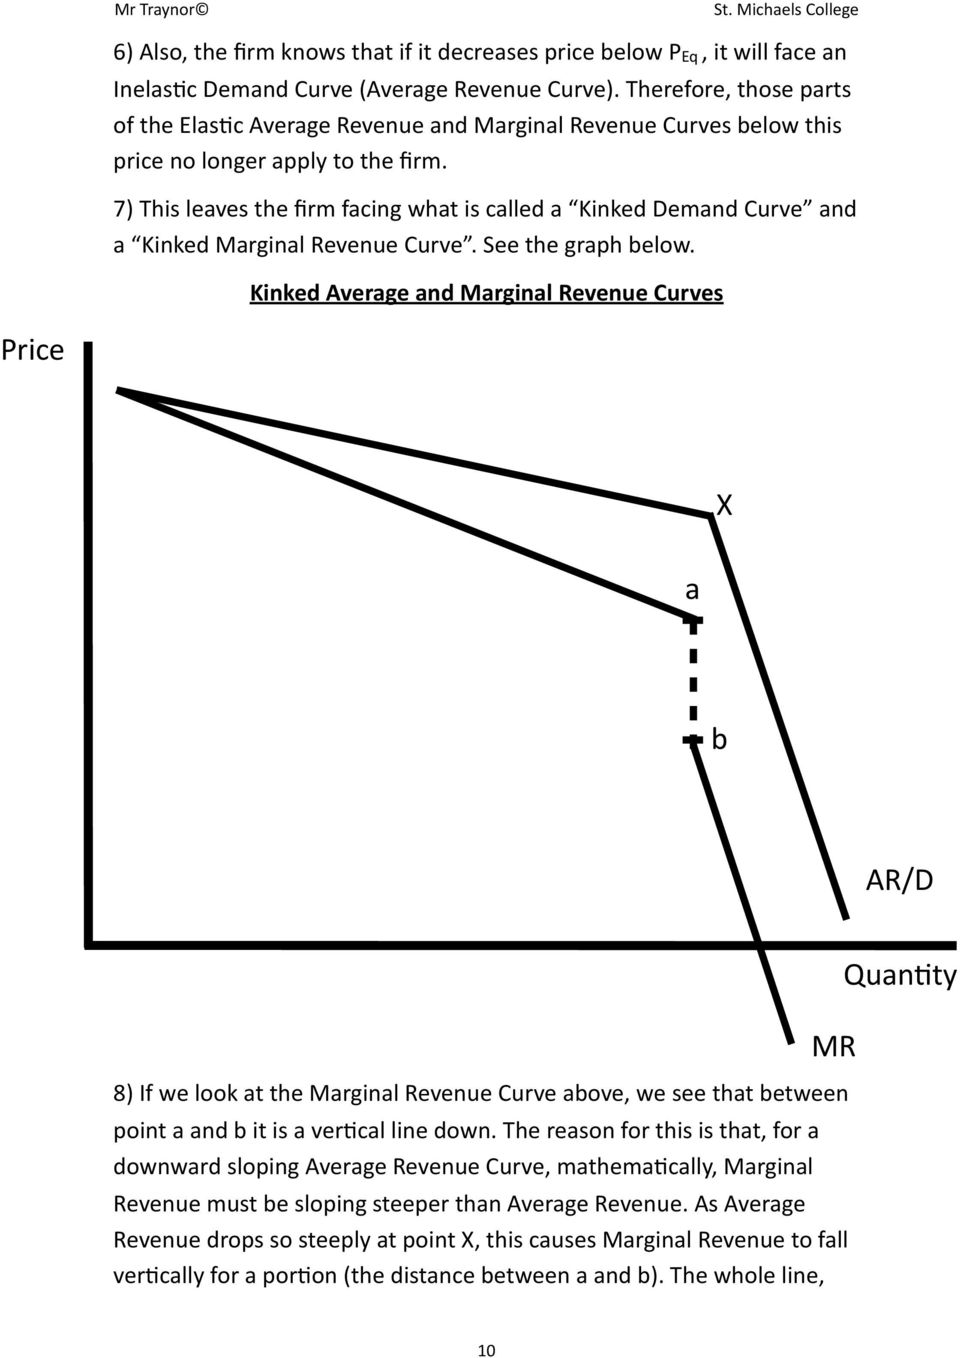 7) This leaves the firm facing what is called a Kinked Demand Curve and a Kinked Marginal Revenue Curve. See the graph below.